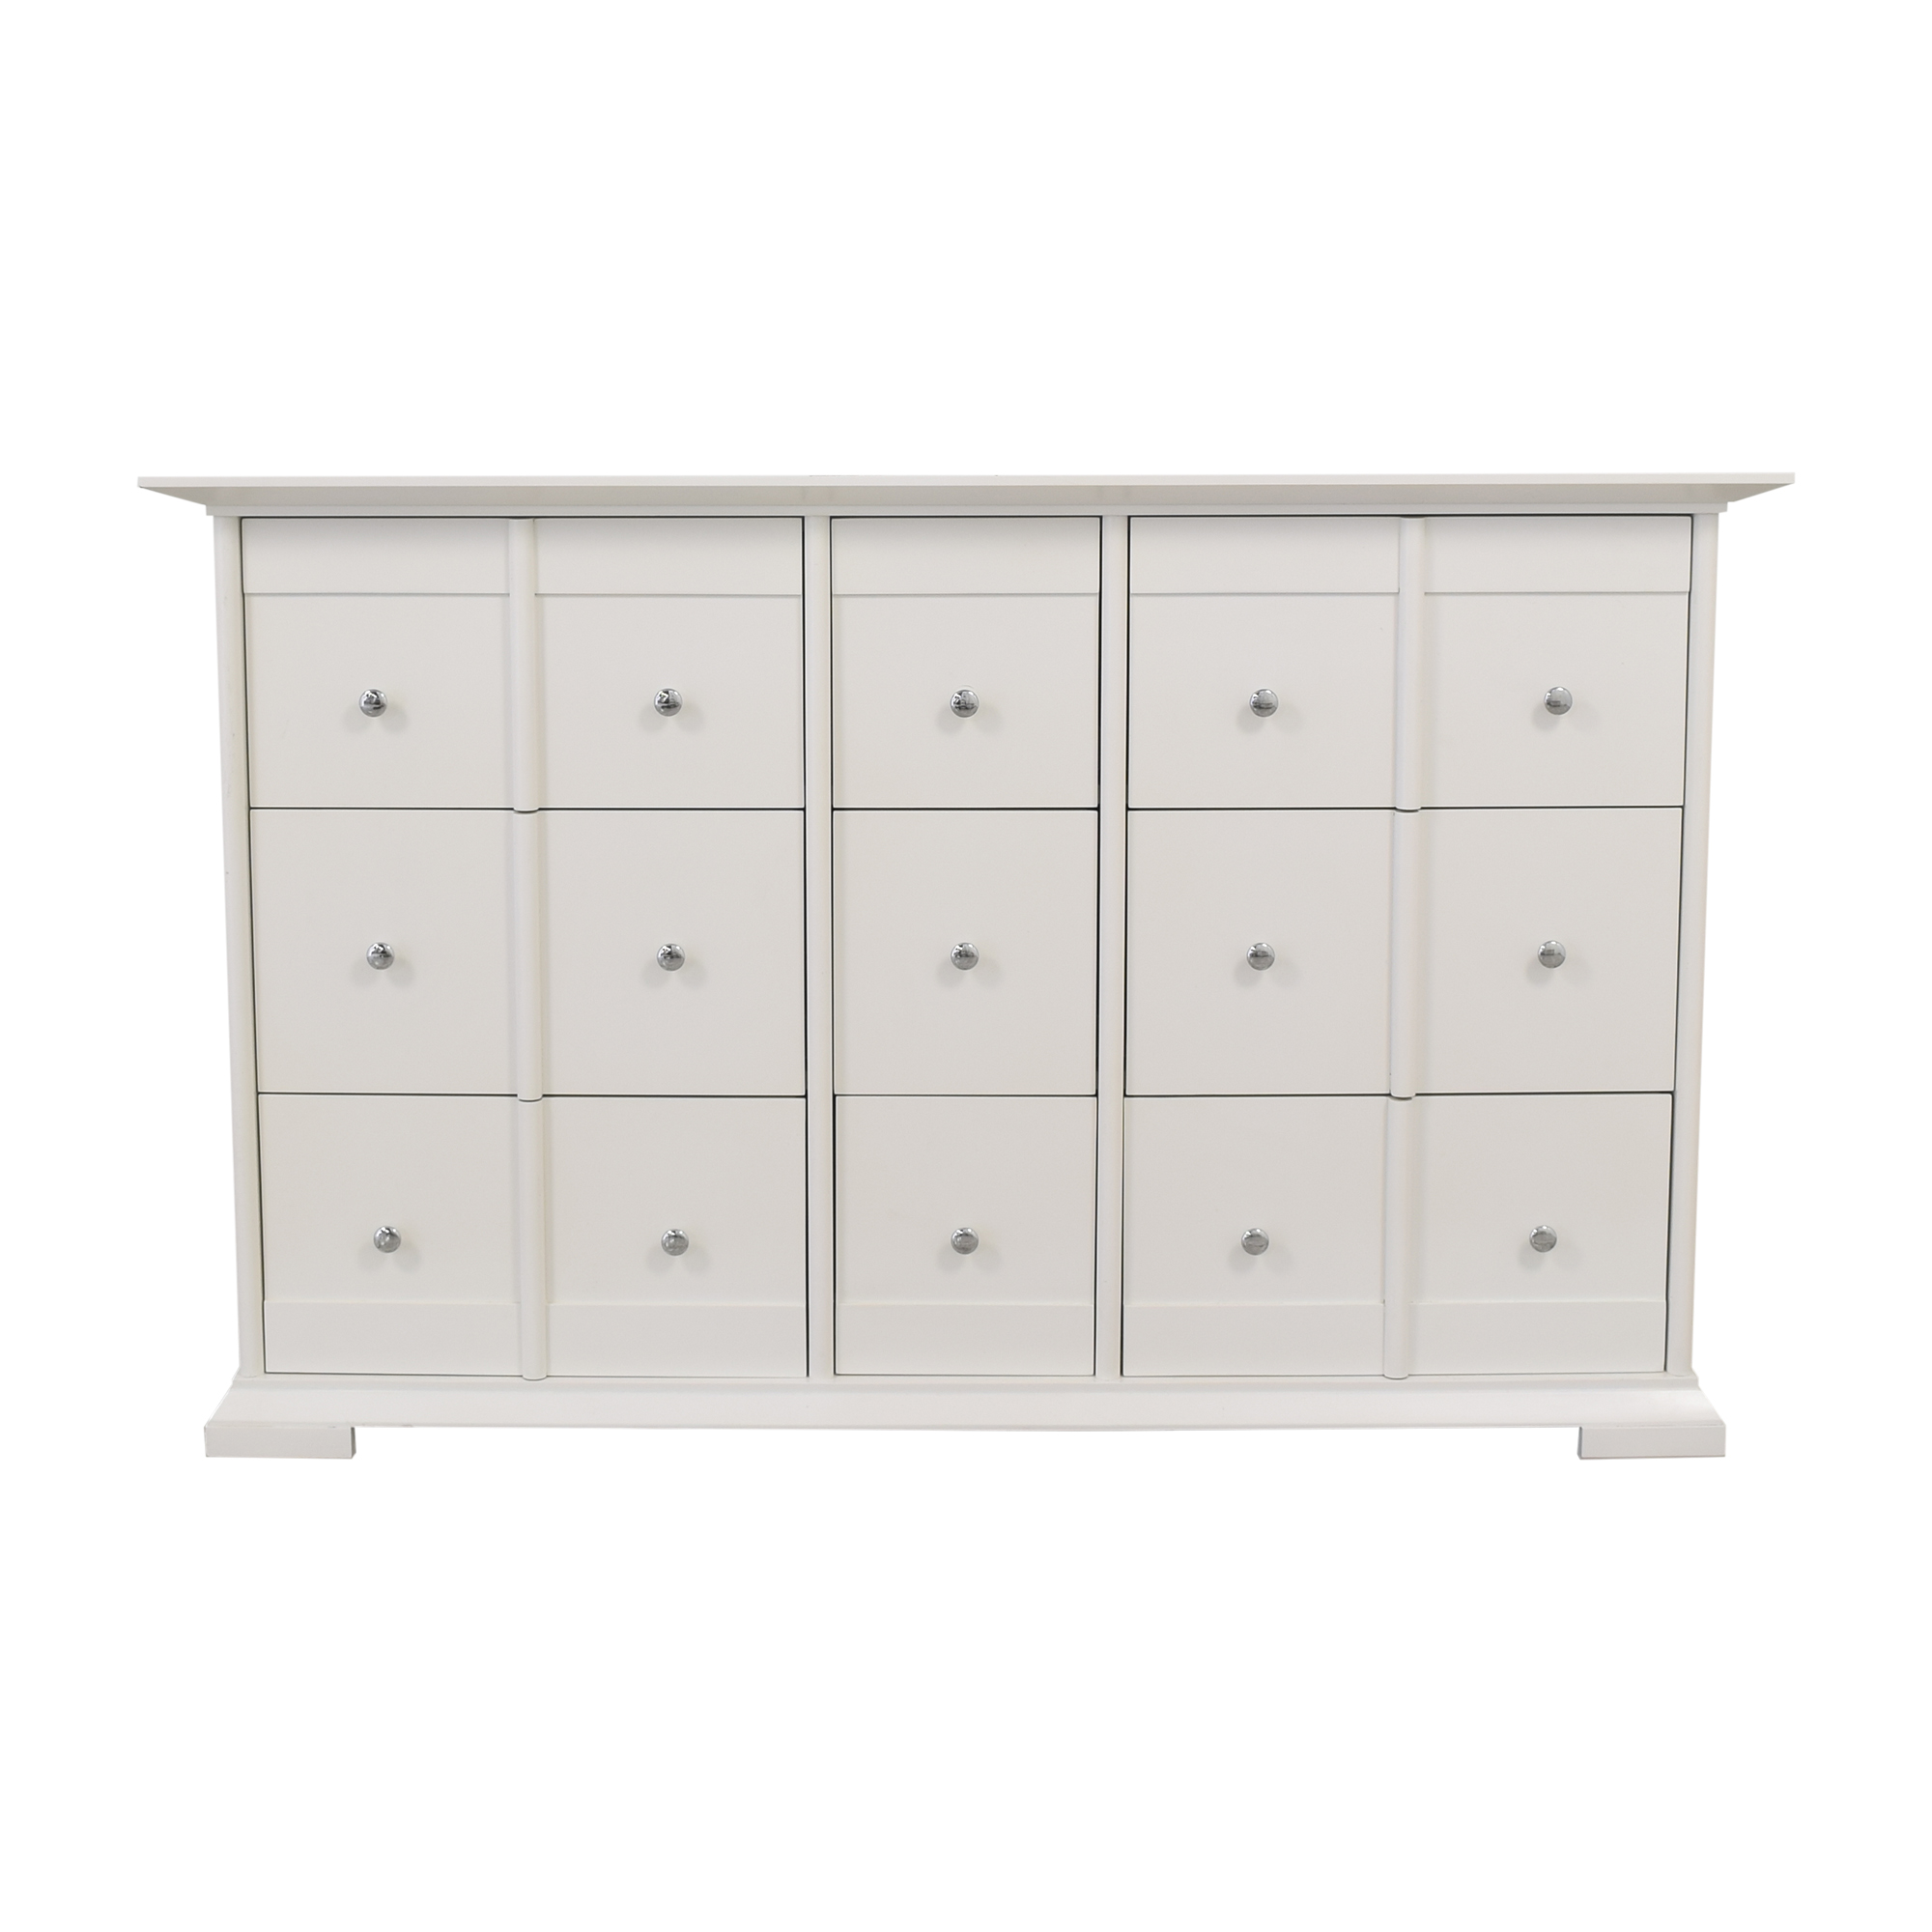 Broyhill Furniture Broyhill Nine Drawer Dresser price